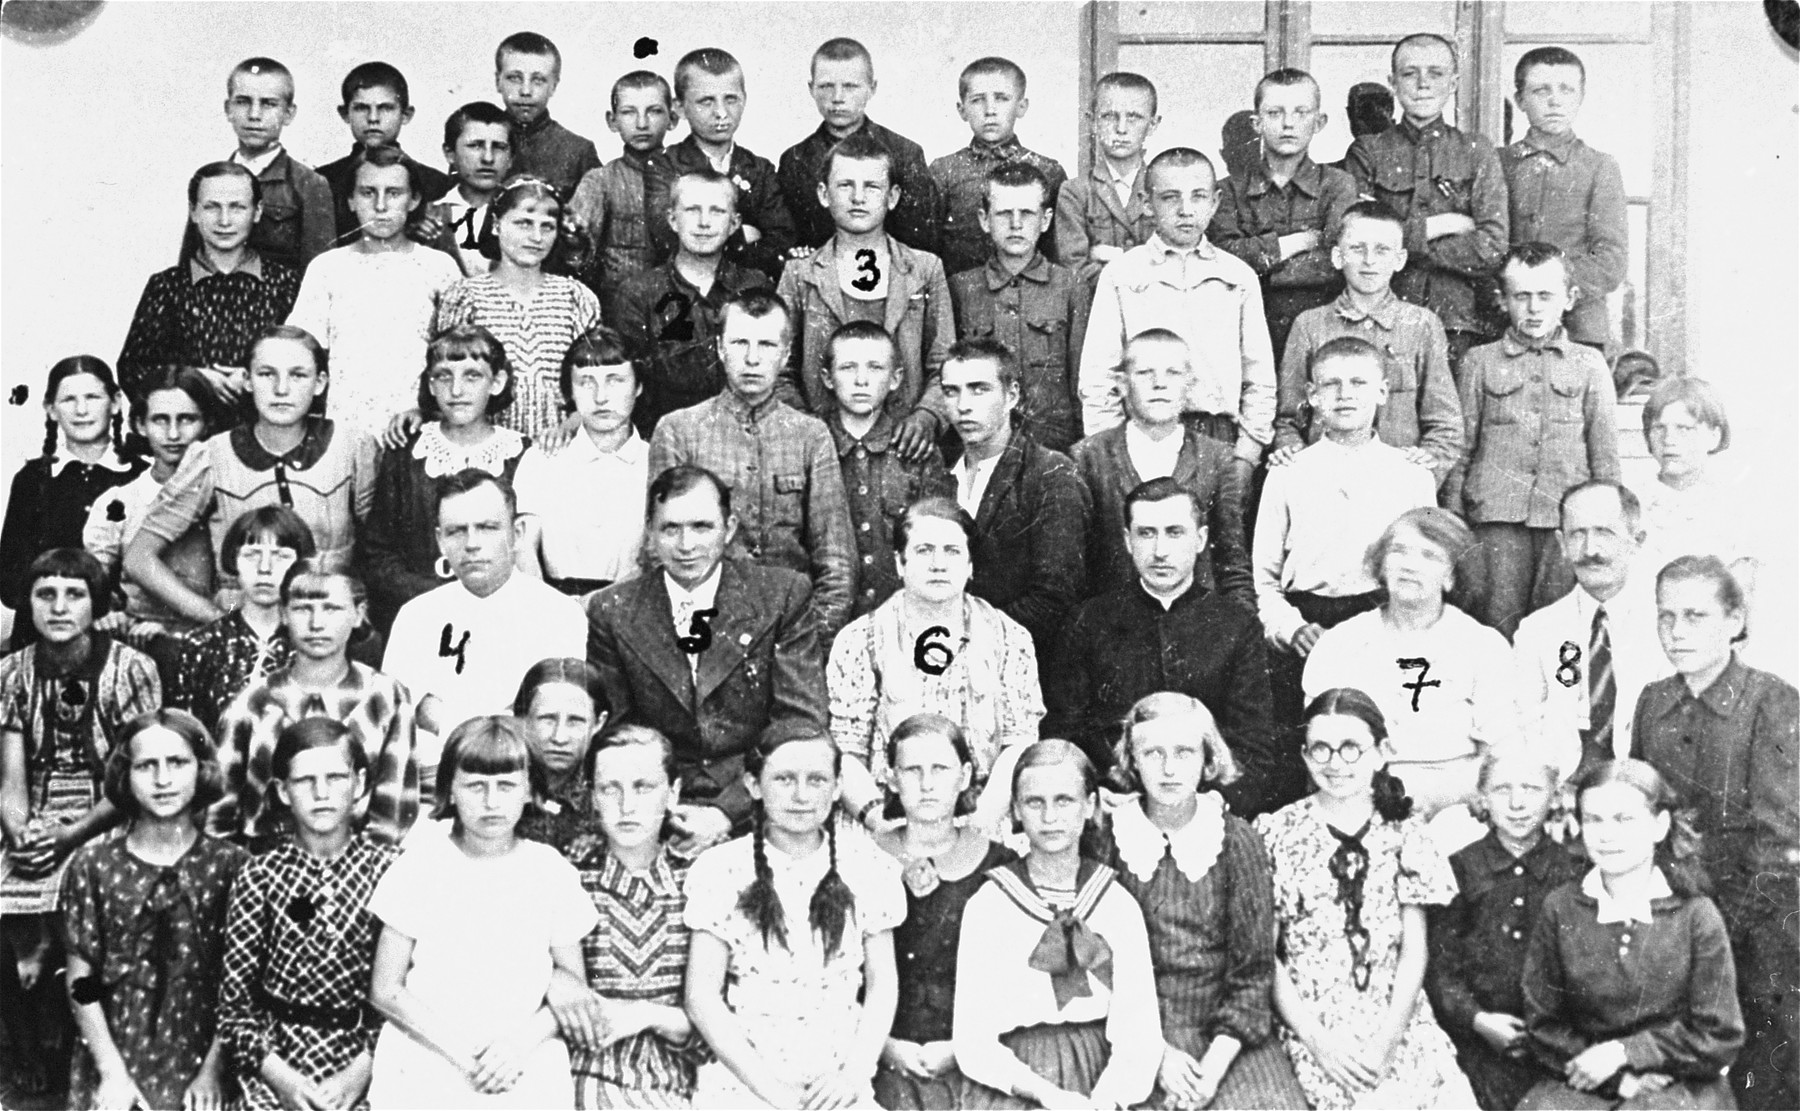 Class portrait of students and teachers at the elementary school in Wisznice.   Children marked with a black dot are Jewish.  The numbered people are 1. Edward Michalczuk (who later did photography in the ghetto for the Germans); 3. Henryk Baranowski; 4. Mr. Krol (music teacher); 5. Mr. Bieszczad (school principal).  One of the children has been identified as Jozef Brodzki.